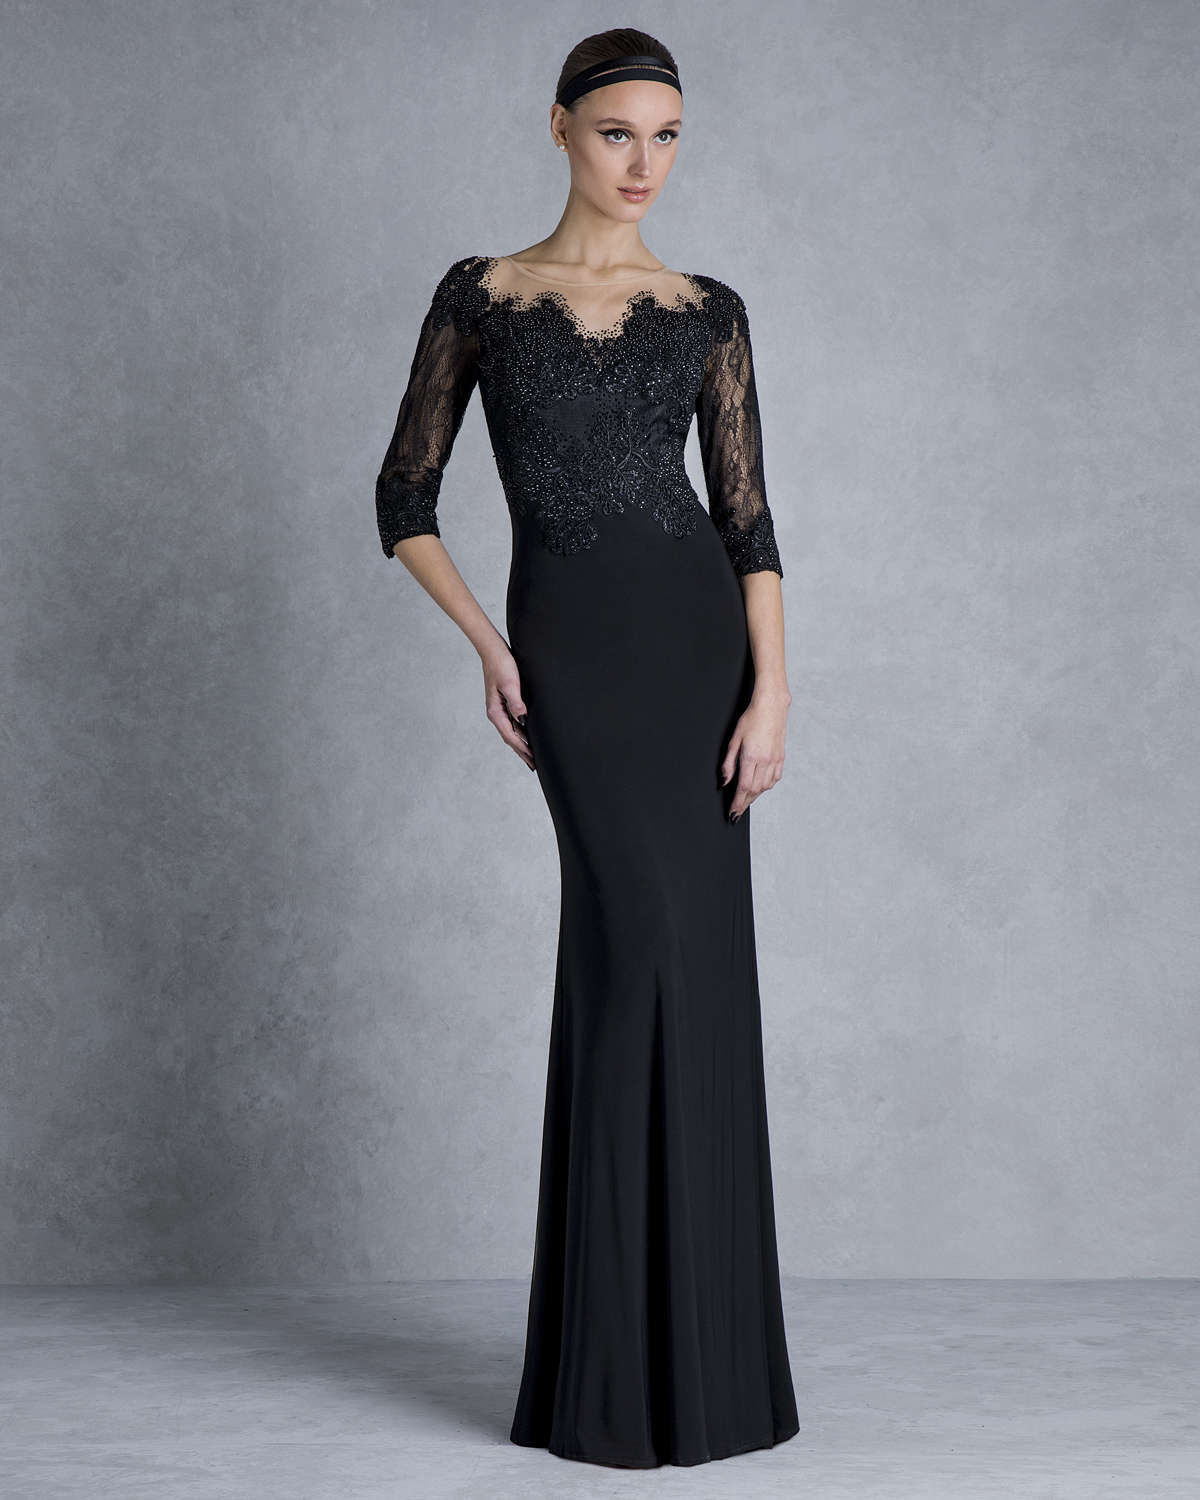 Evening Dresses / Long jersey evening dress with beaded top and lace sleeves